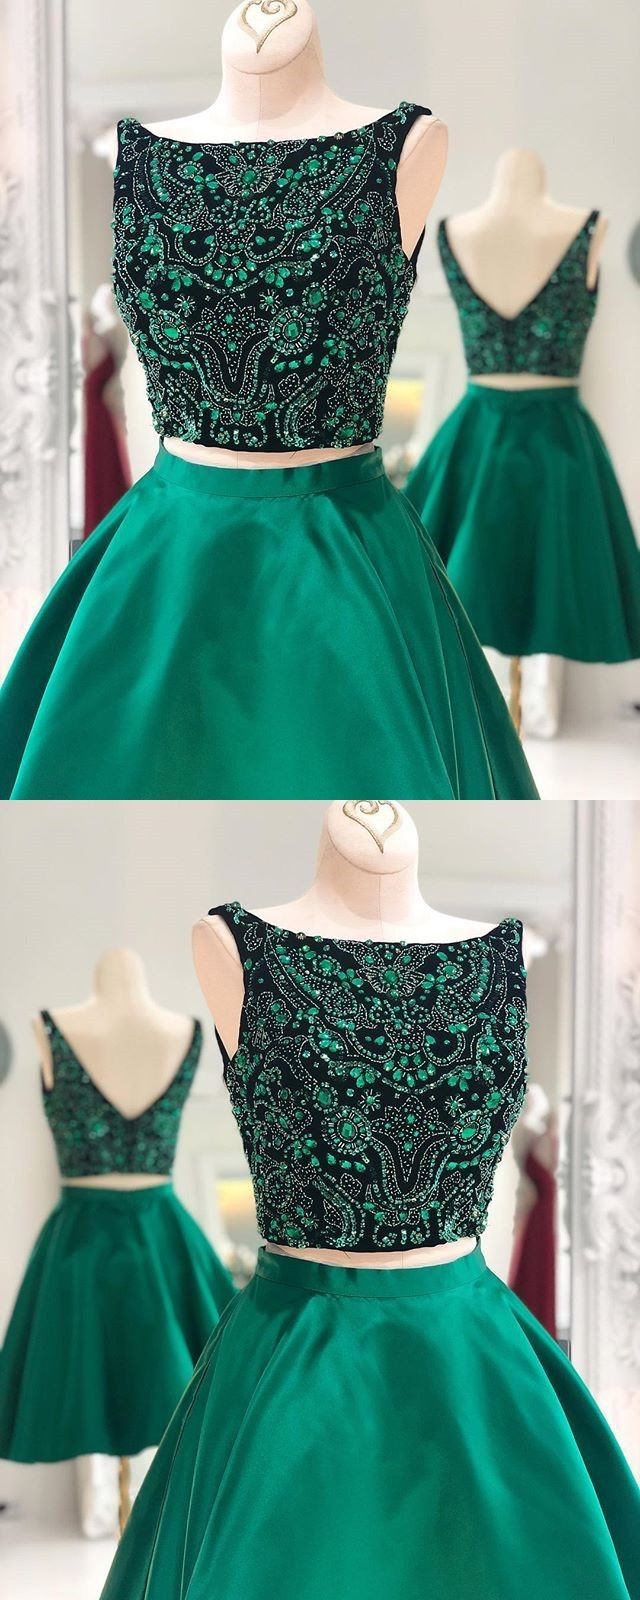 elegant hunter green 2 pieces homecoming dresses with beaded ... c31e1fb0c